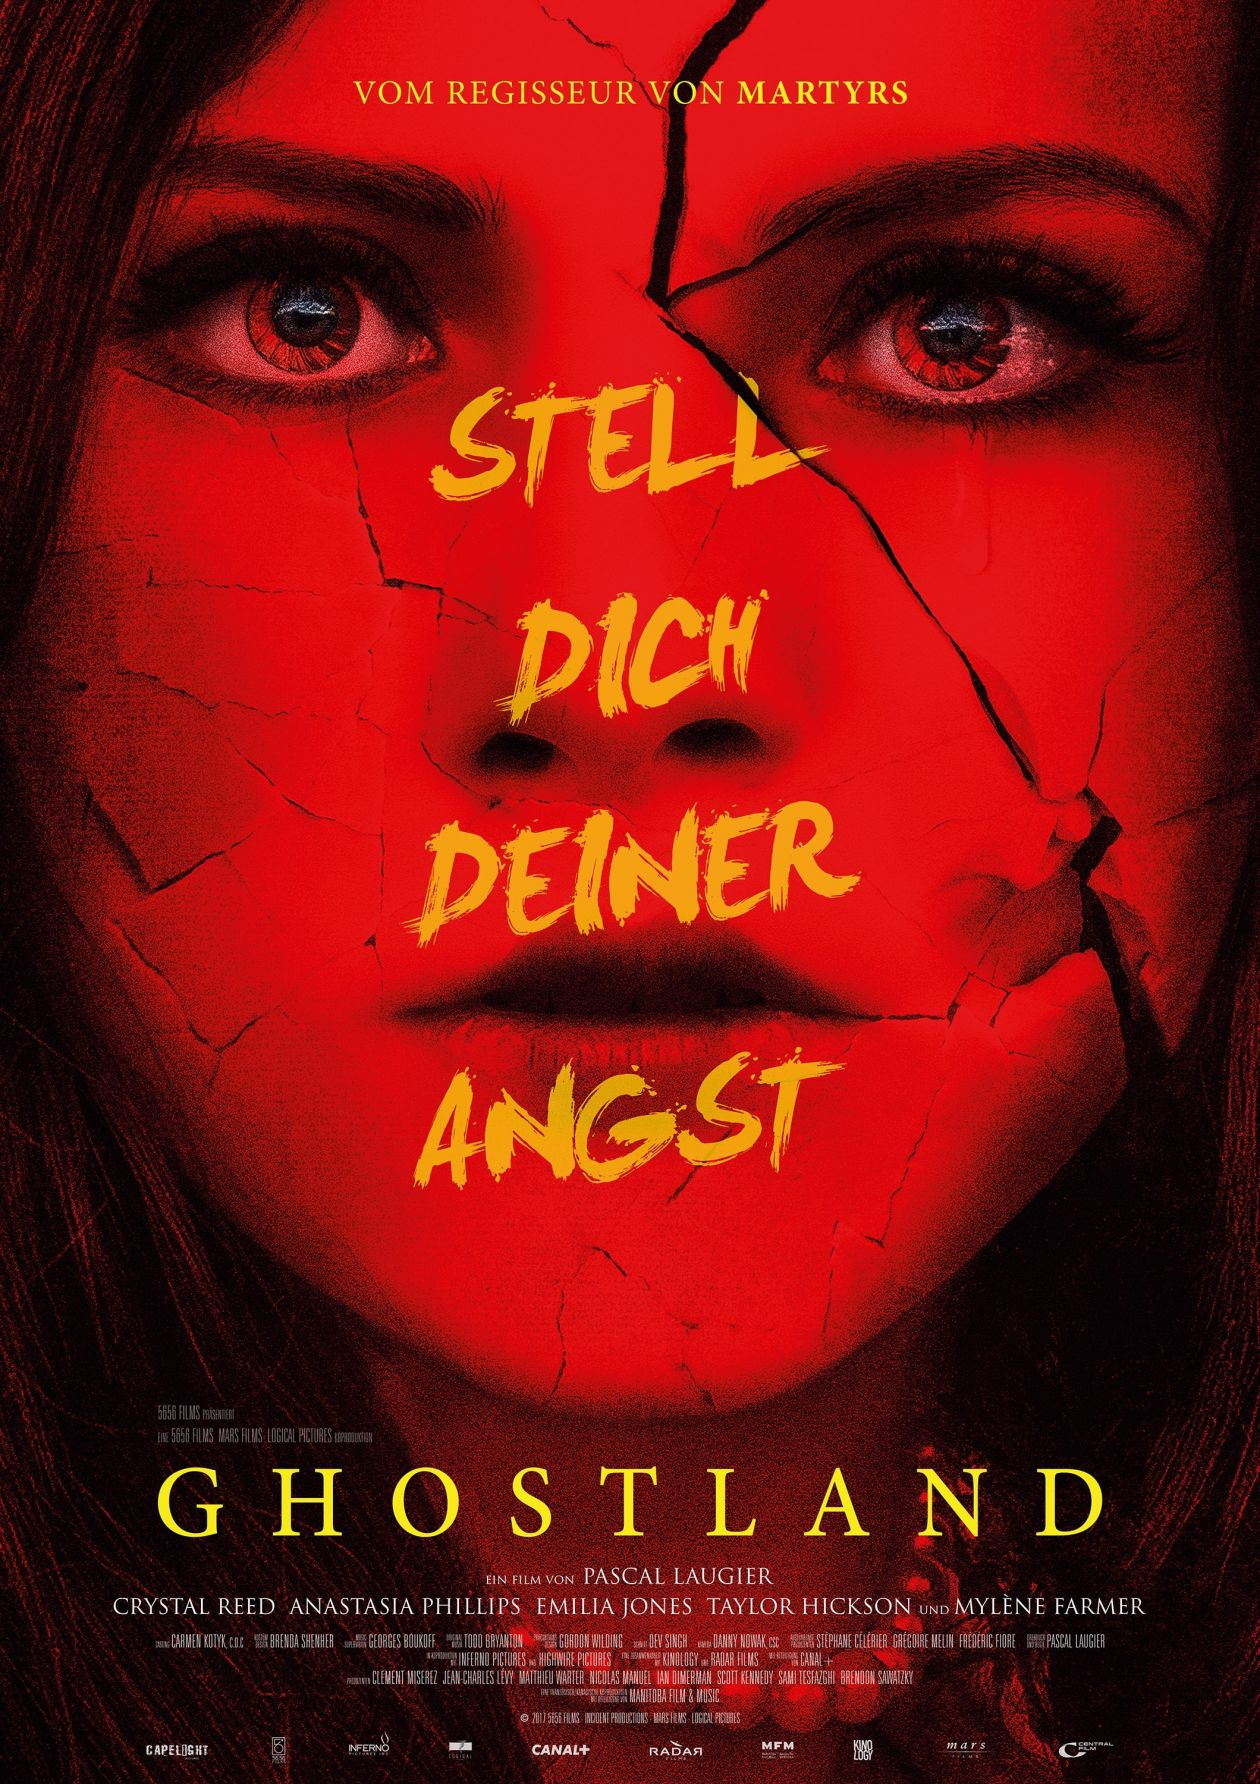 Crystal Reed actress / Elizabeth Keller / Ghostland / Pascal Laugier 2018 Movie Poster Affiche film